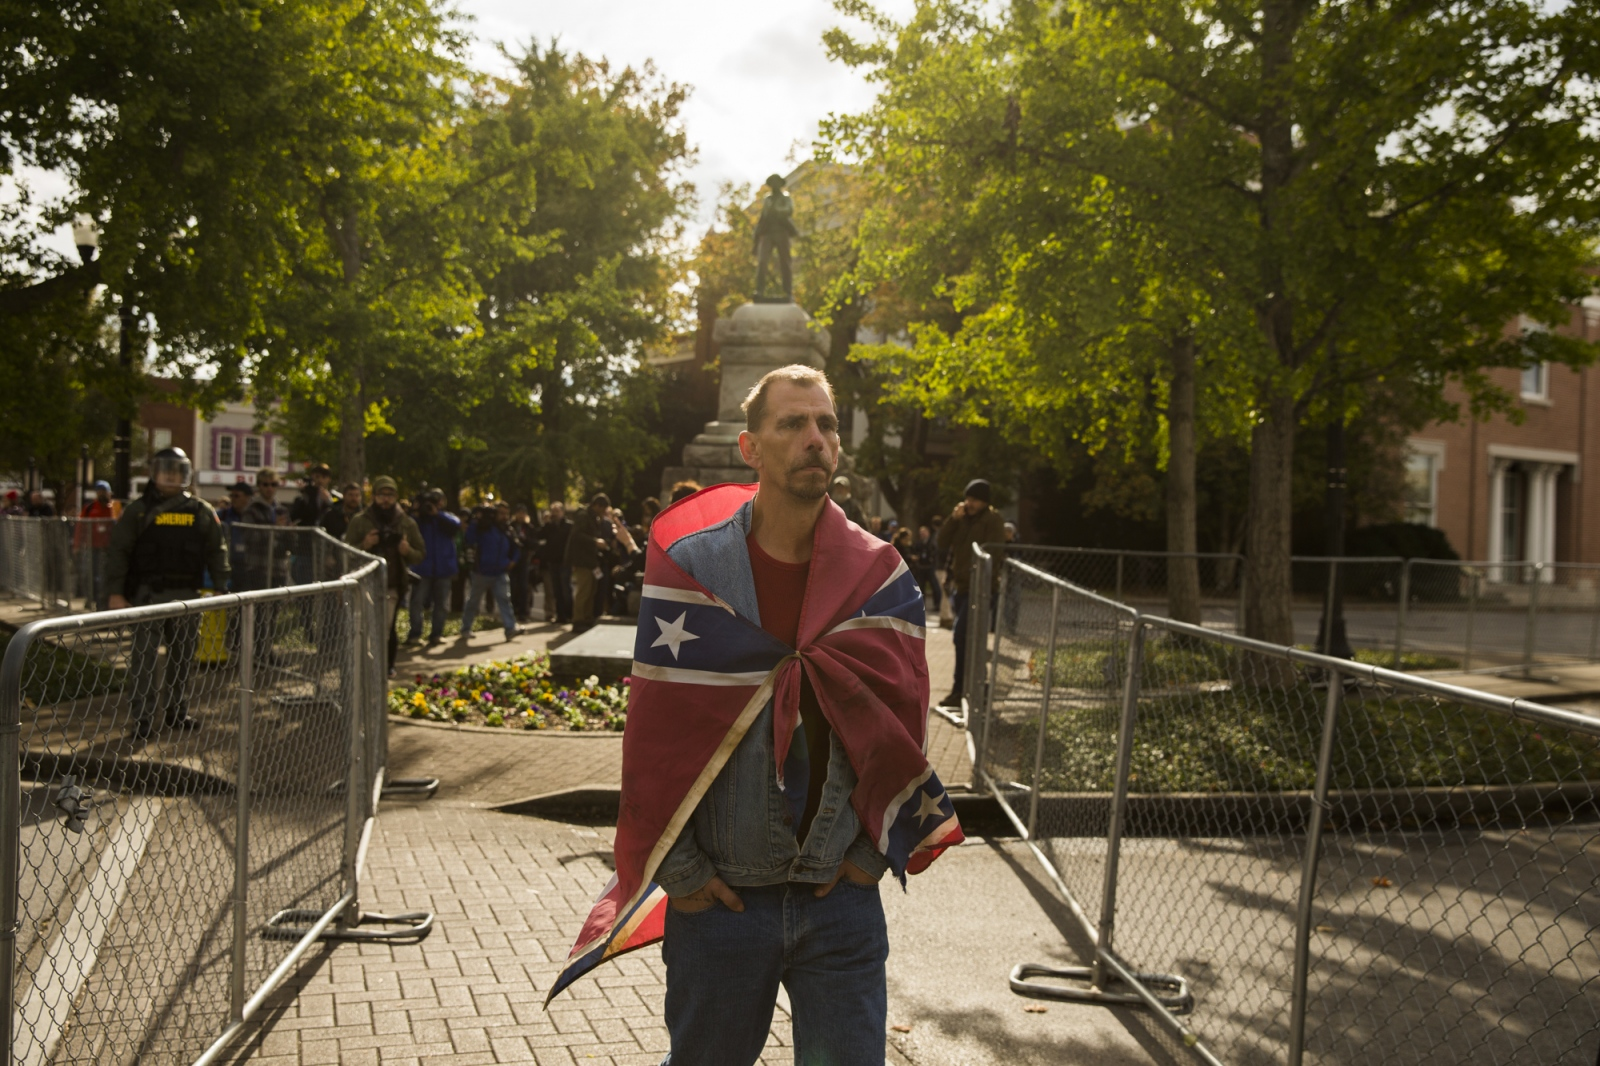 """Photography image - 10282017 - Murfreesboro, Tennessee, USA: A man wrapped in a confederate flag leaves Public Square as the confederate statue recedes behind him in downtown Murfreesboro, Tennessee. White Nationalist groups gathered for a """"White Lives Matter"""" rally in downtown Shelbyville, Tennessee earlier in the day, but canceled a second rally in Murfreesboro. The rally, and the counter rally in Shelbyville were the largest such gatherings since the deadly Charlottesville Unite the Right rally in August.  A coalition of neo-Nazis and white nationalists  including the Nationalist Socialist Movement, Traditional Workers Party, Vanguard America and Anti-Communist Action, and League of the South, were present.  The White Nationalist and neo-Nazi groups gathered at Henry Horton State Park 45 minute from Murfreesboro, but dispersed when members of the media arrived.   (Photo by Jeremy Hogan)"""